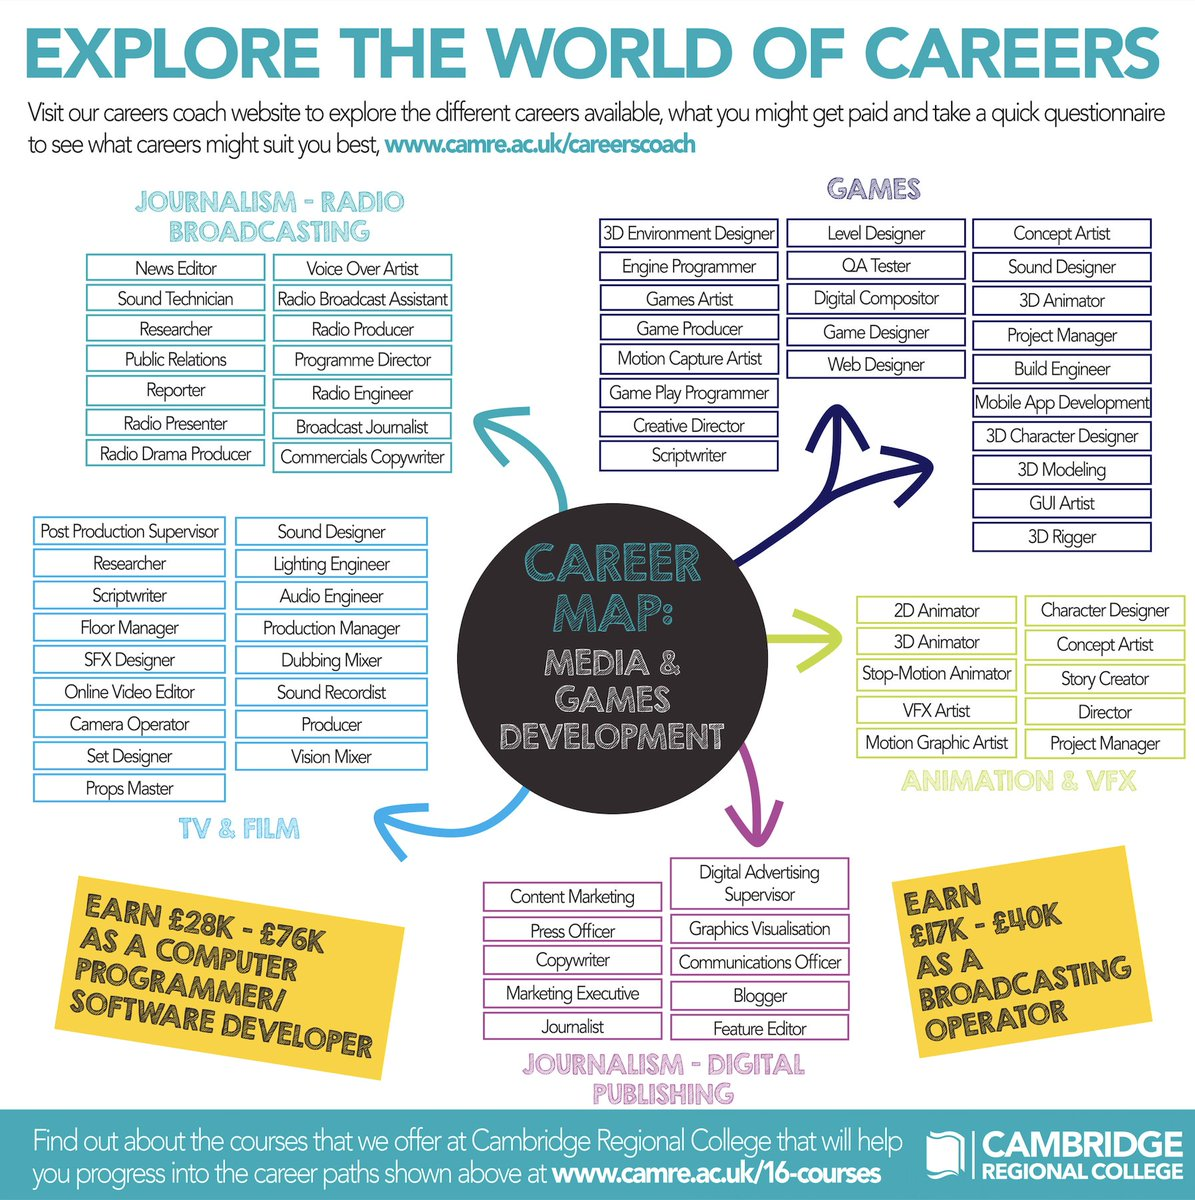 There's an array of career opportunities available for students who complete a Media course at CRC. 👨💻  From working in journalism, to games development or animation, there's a great career path for everyone!  View our online career maps here: https://t.co/7bK6oM4074  #NCW21 https://t.co/ljwKY2Ioh9